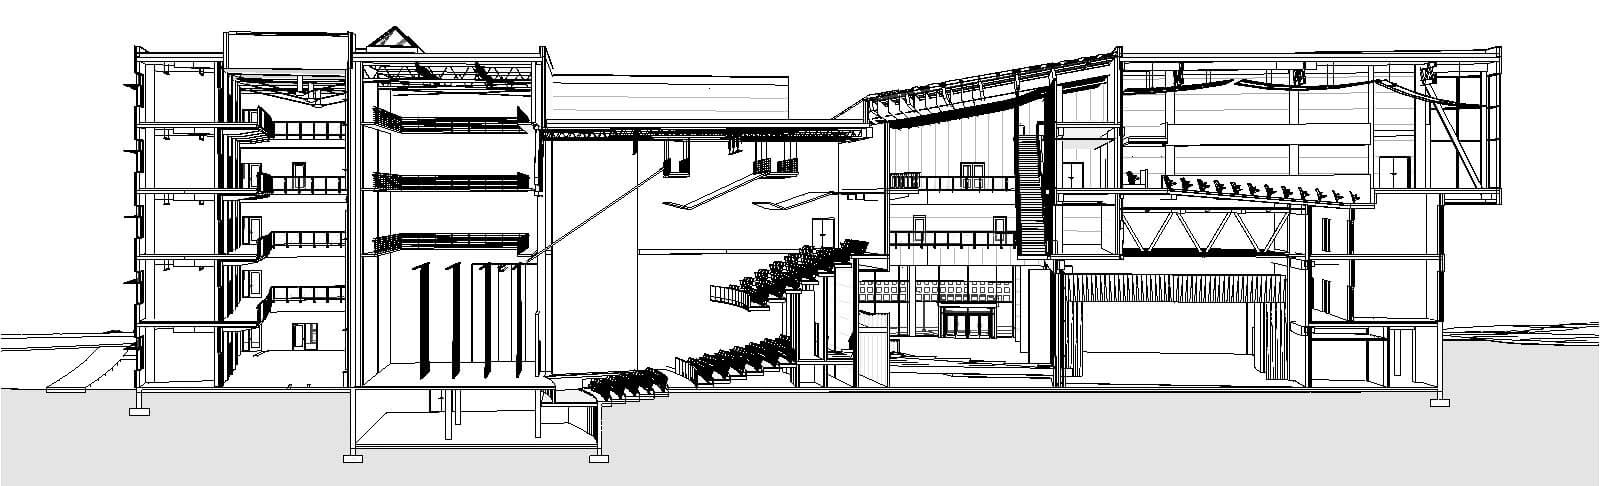 Drawing Lines In Revit : Shadows in section revit theater perspective